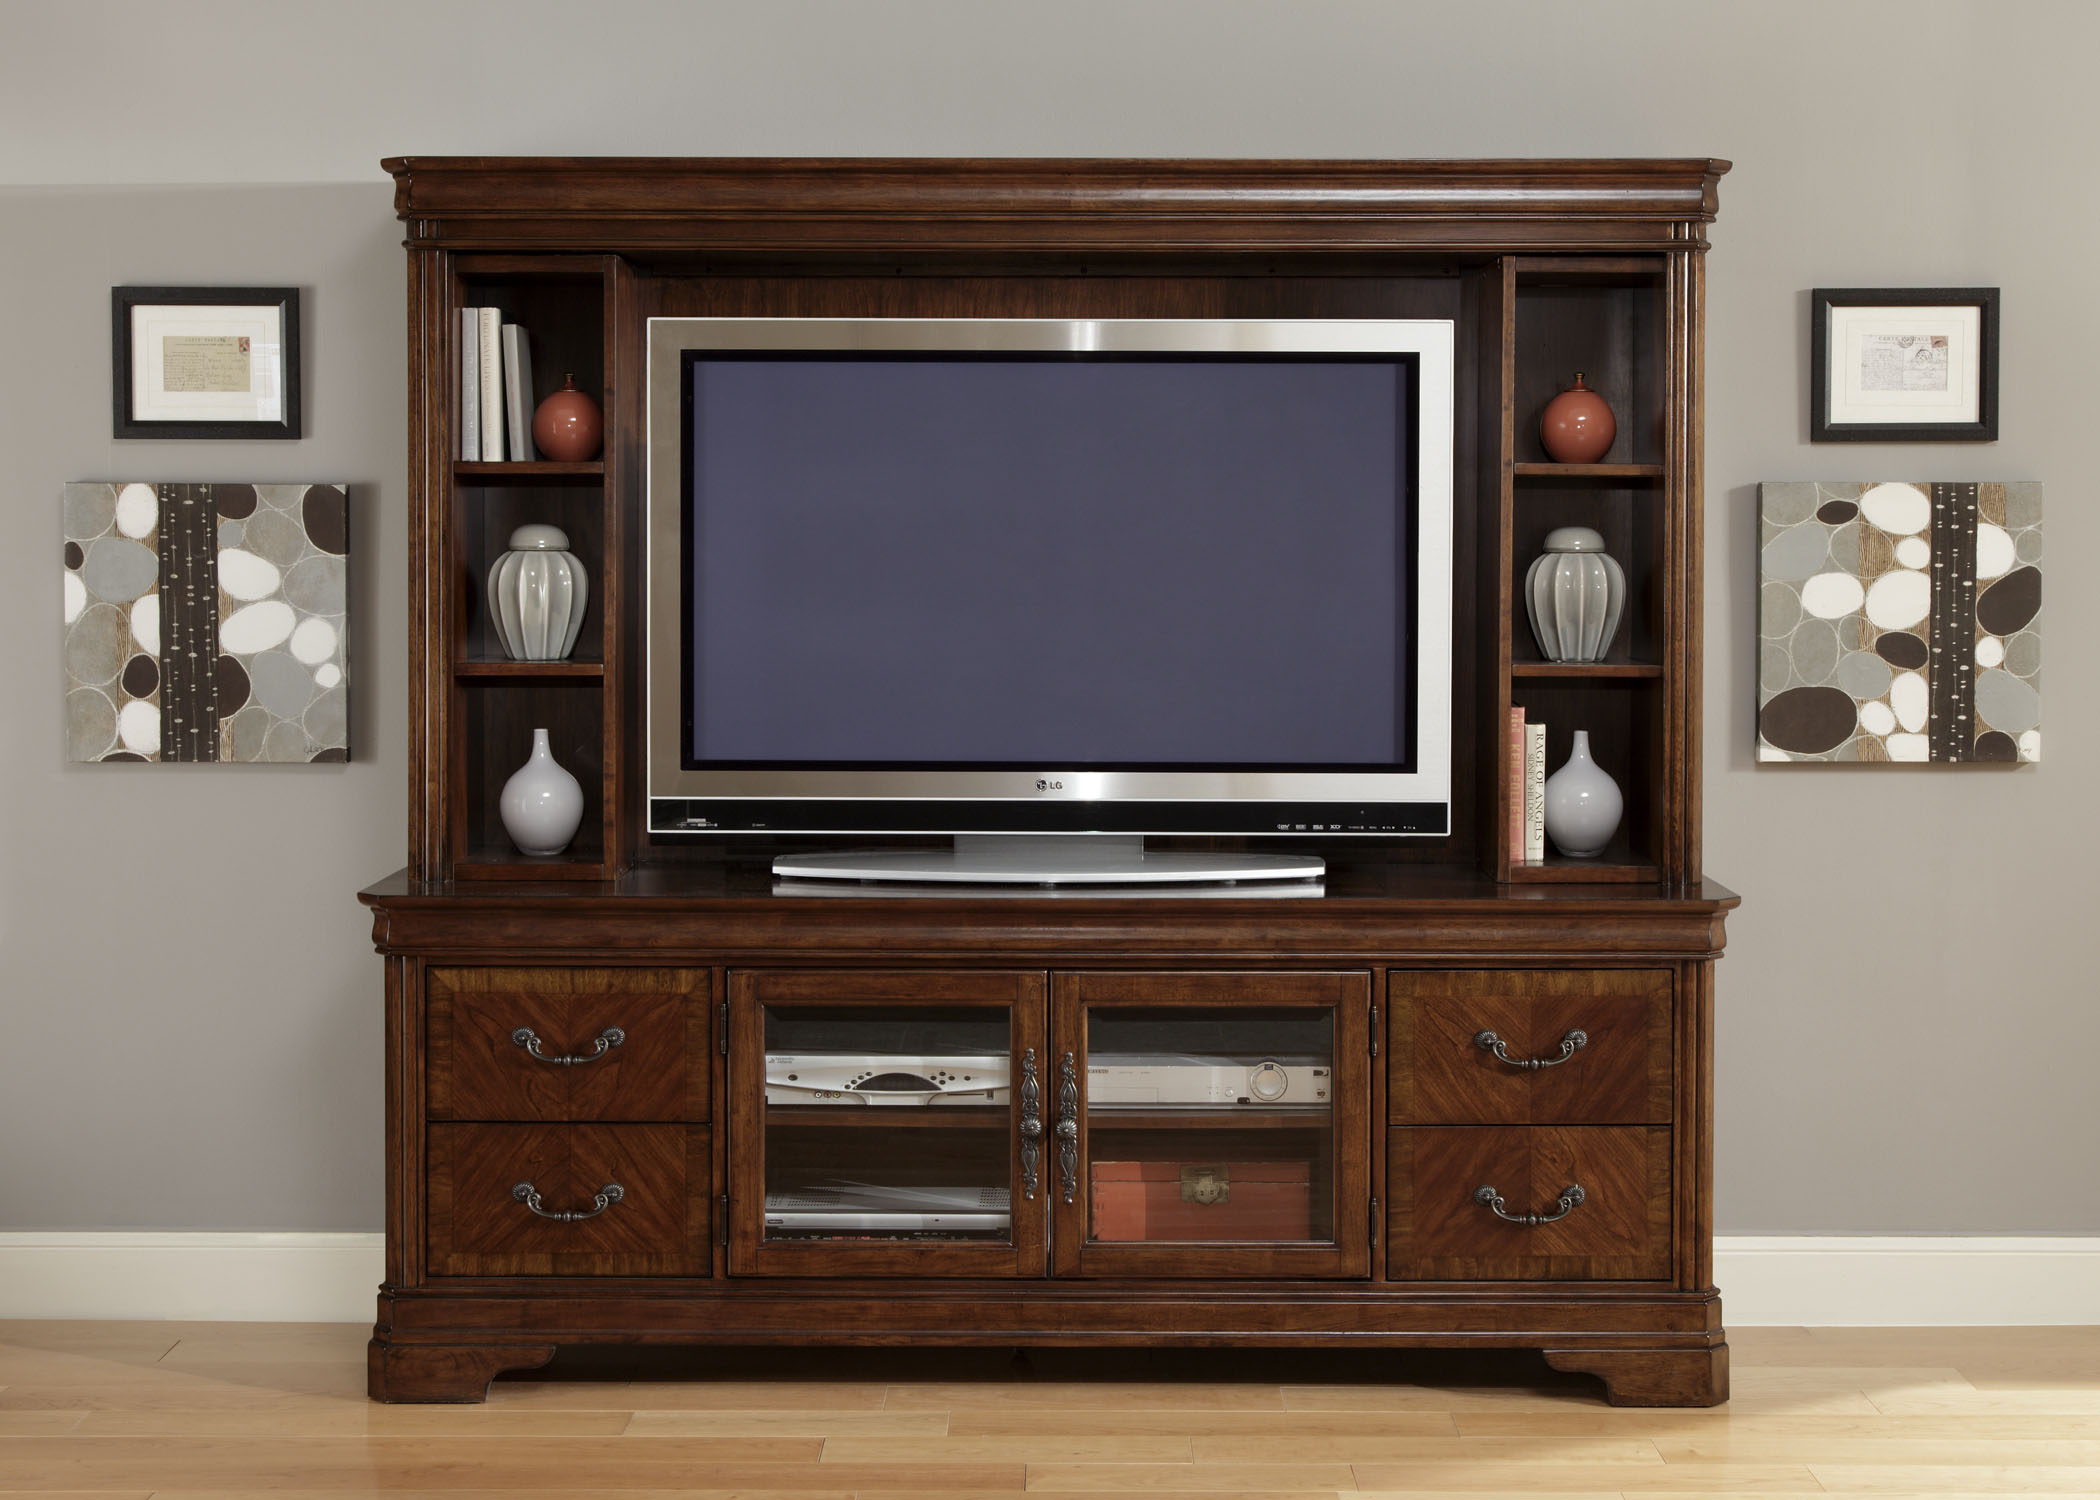 Bail Pulls For Furniture Details about Traditional Brown TV Entertainment Center